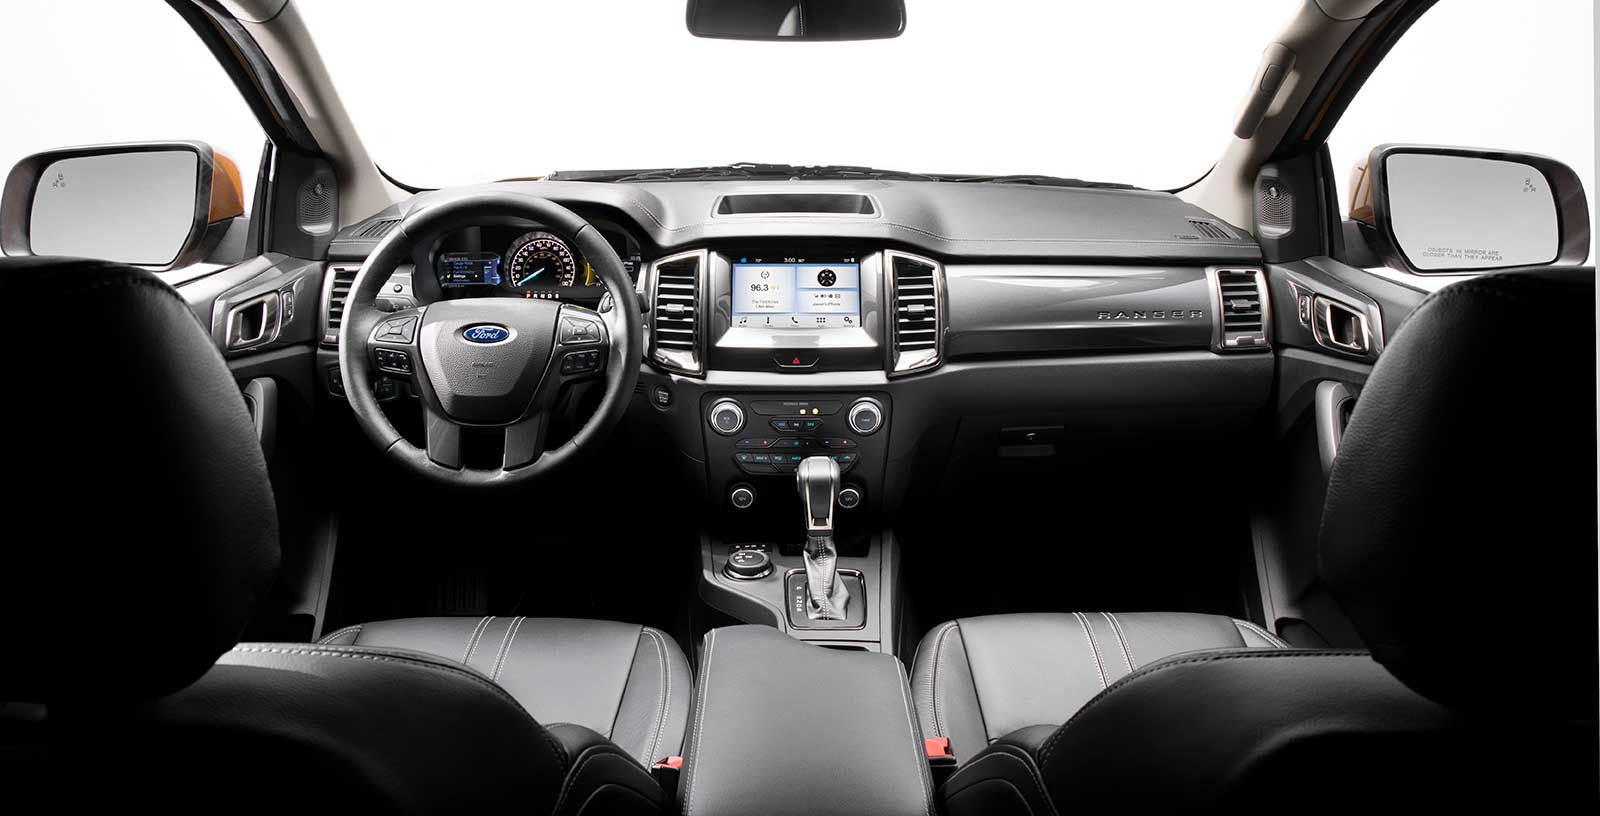 2019-Ford-Ranger-Interior-03.jpg